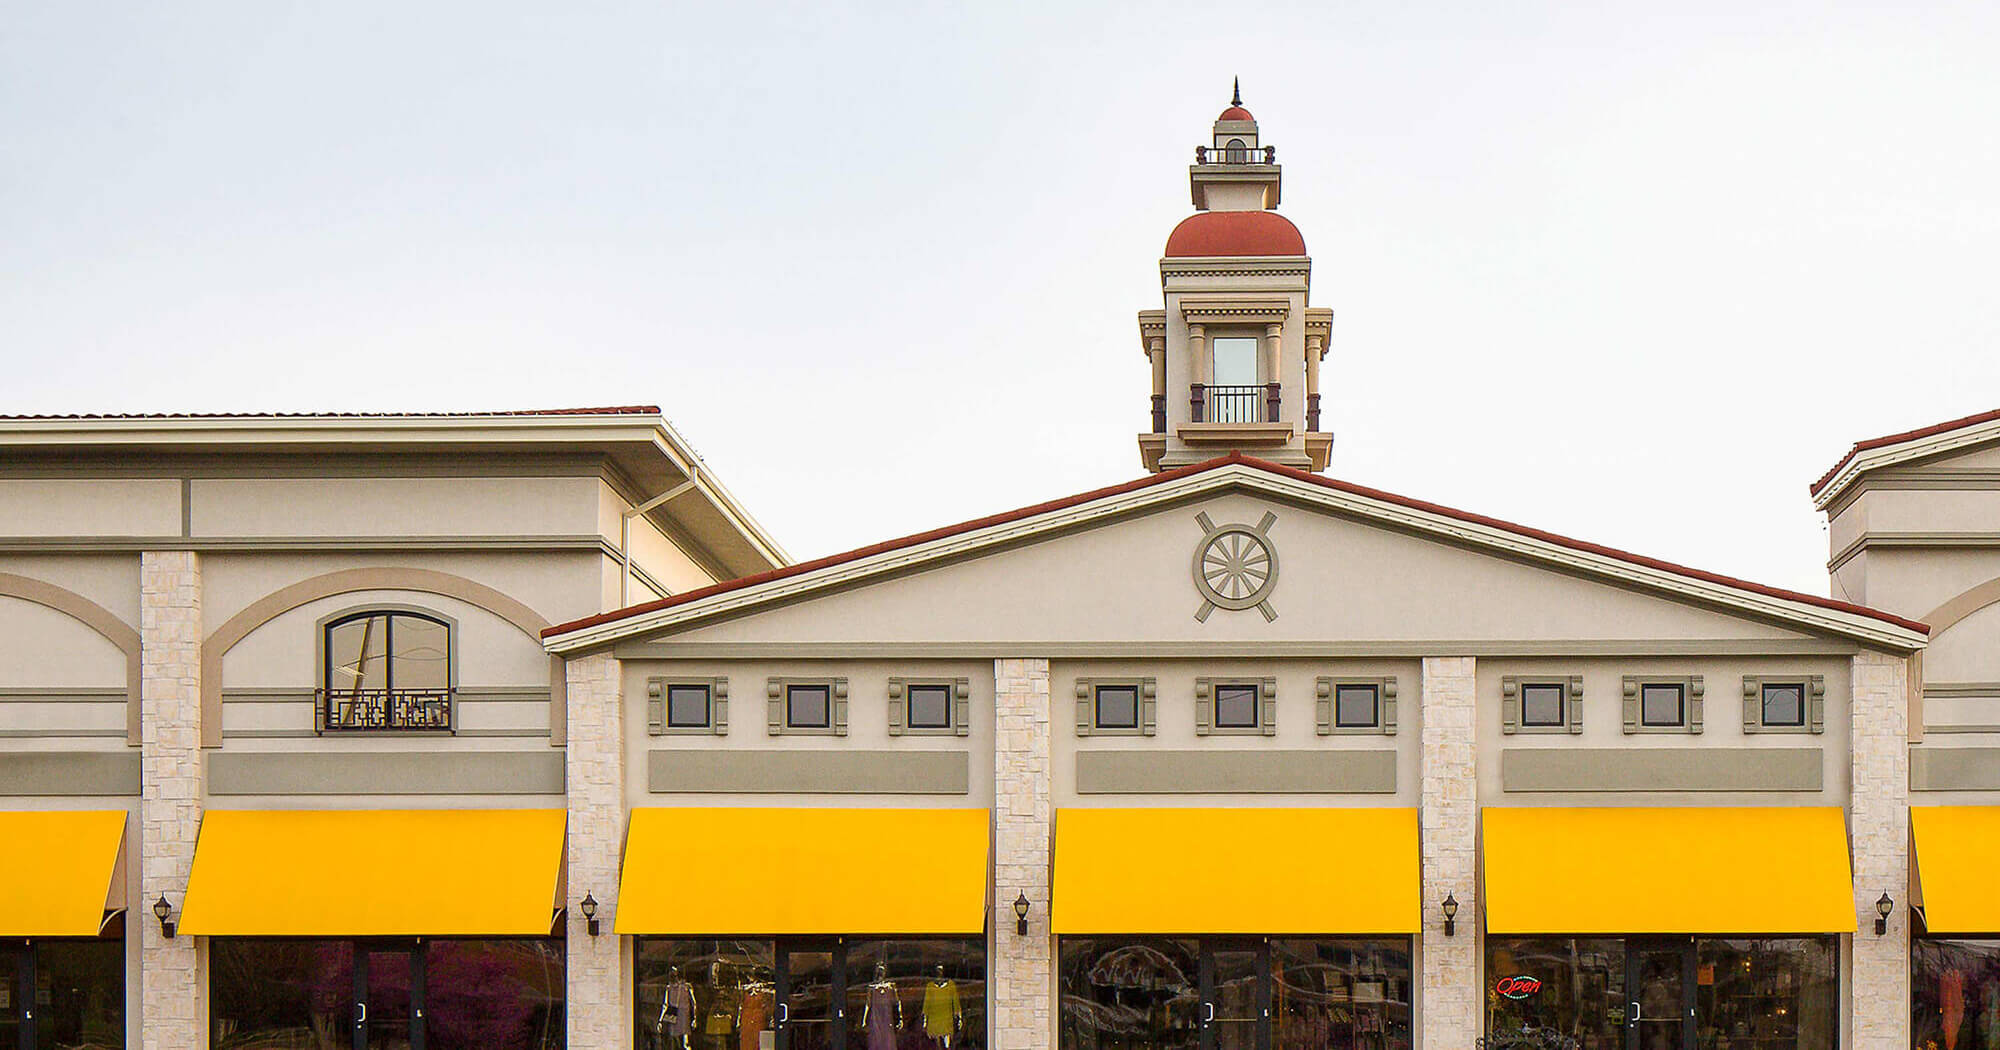 A shopping center gets a pop of color with awnings made using yellow Sunbrella shade fabric